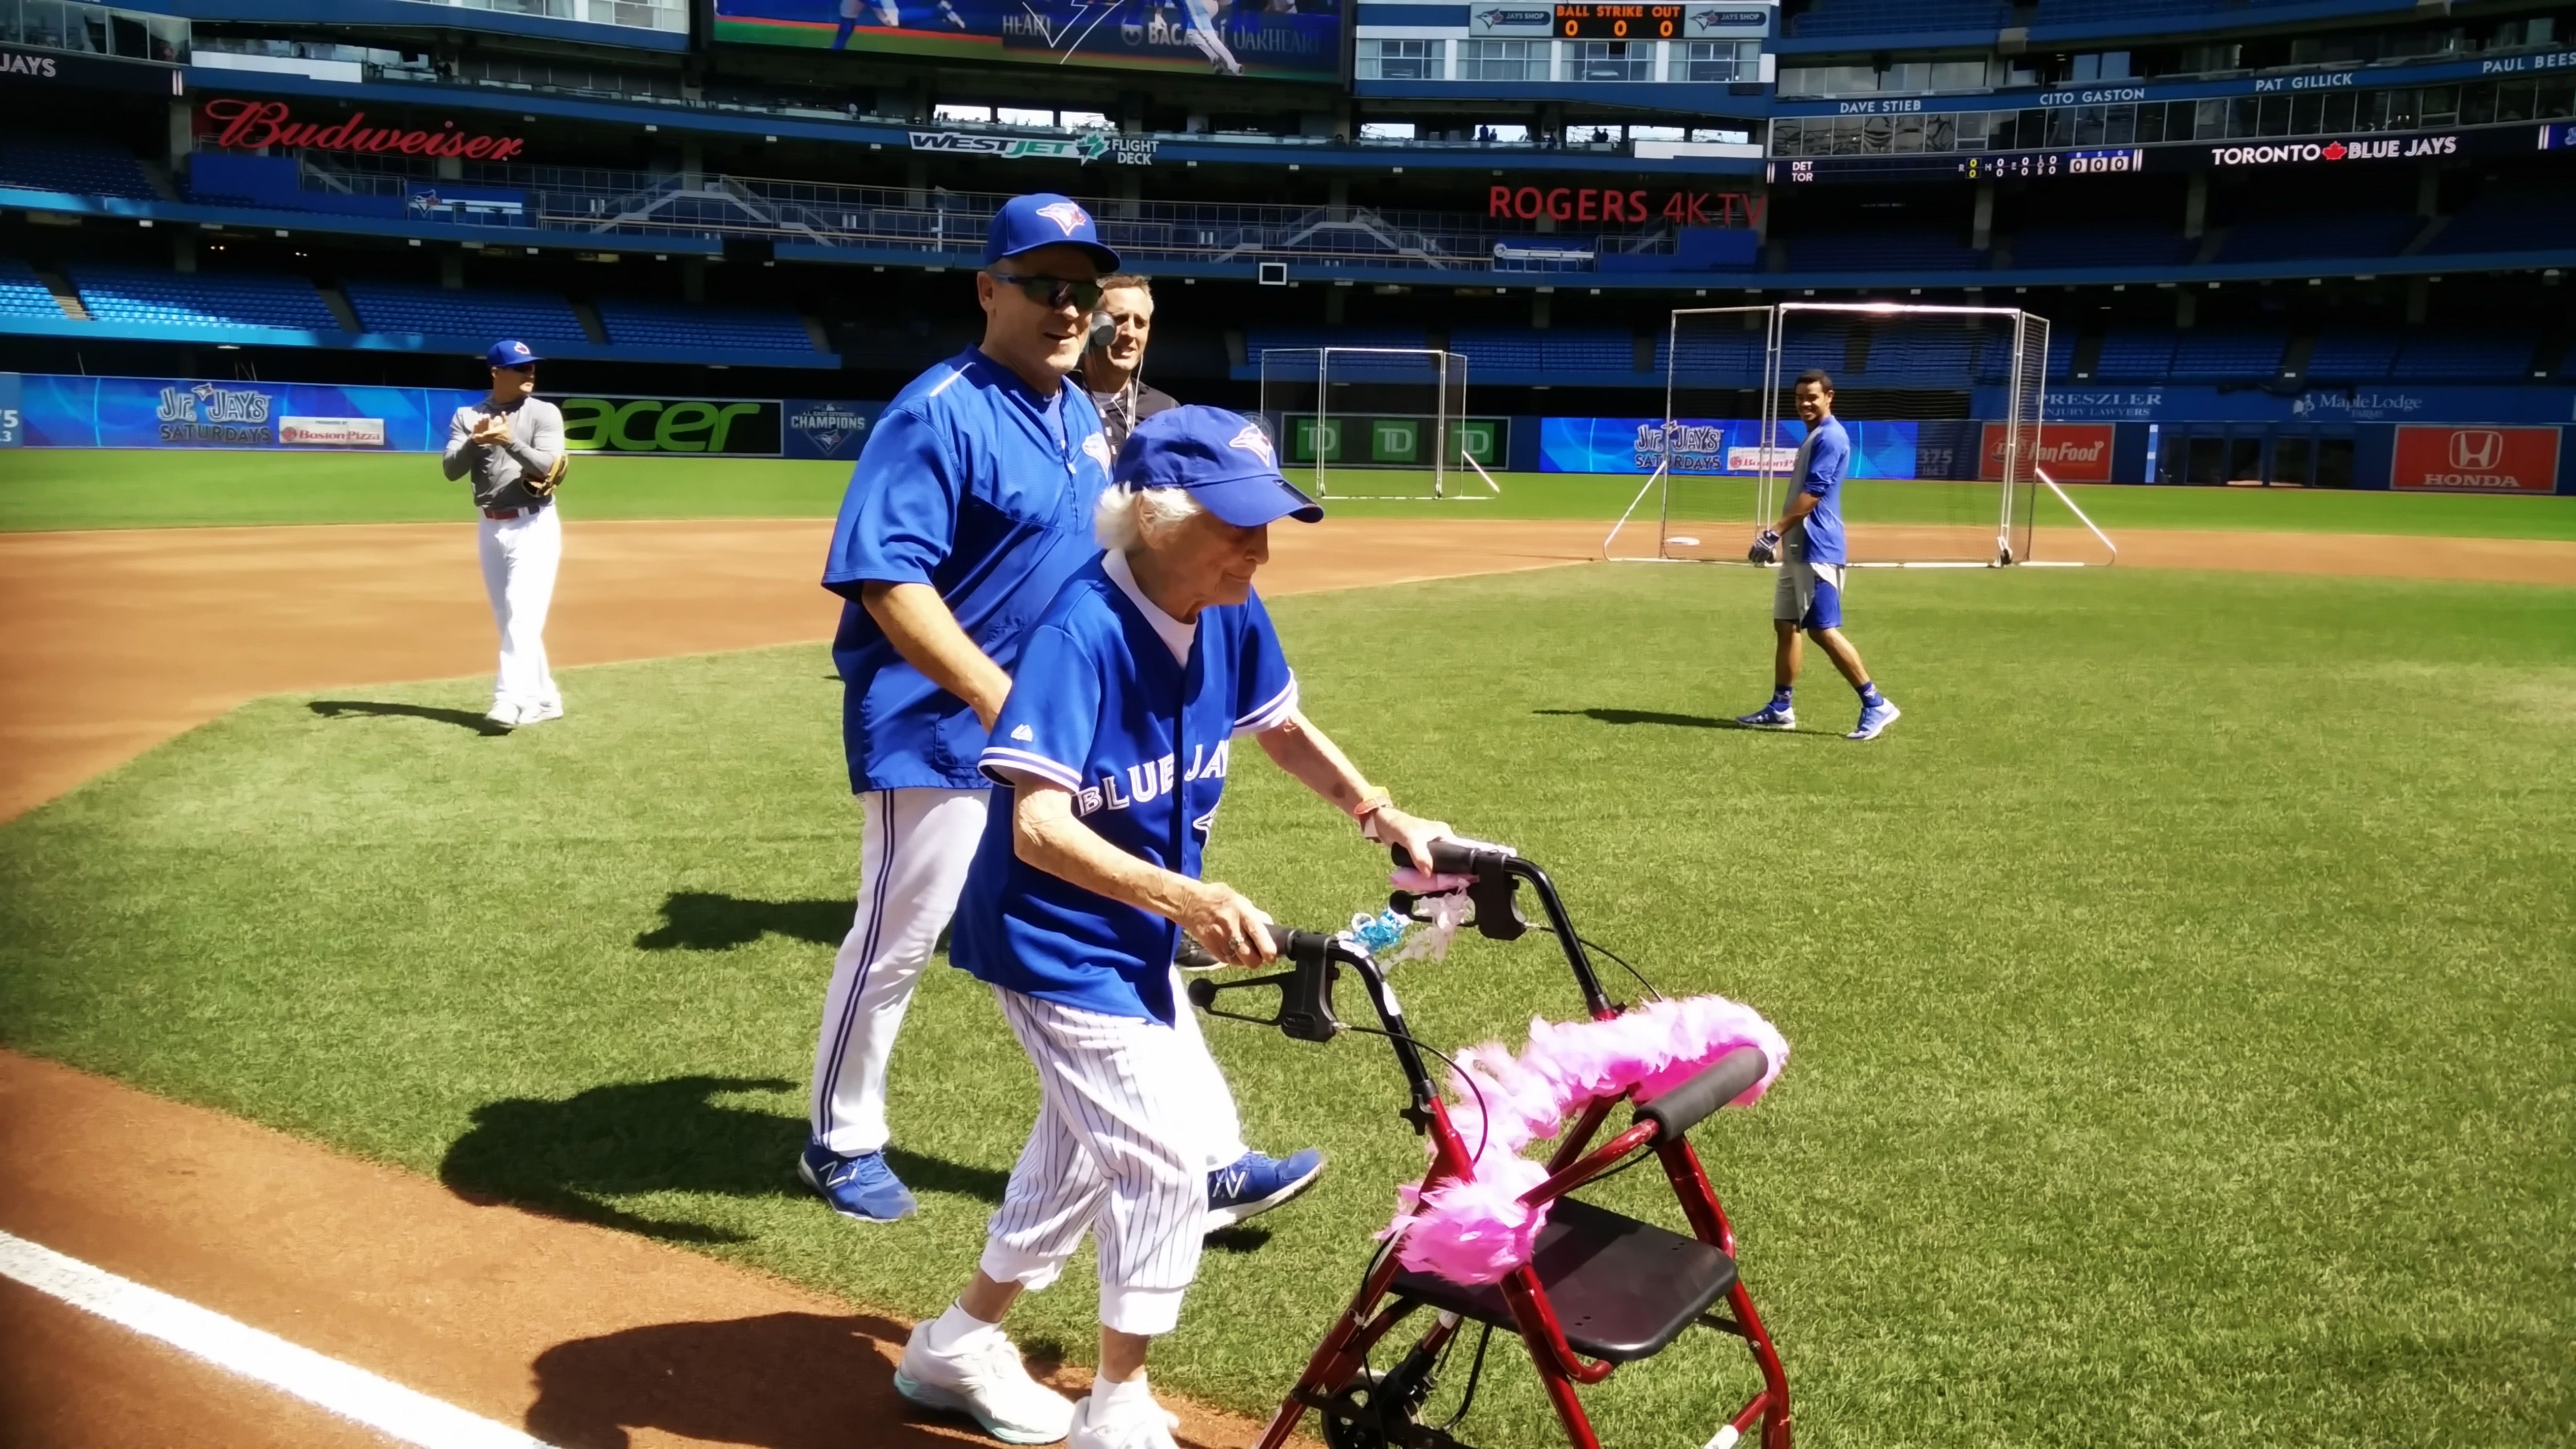 Watch Kitty Cohen A 103 Year Old Blue Jays Fan Run The Bases At Rogers Centre In Style Blue Jays Rogers Centre Toronto Blue Jays